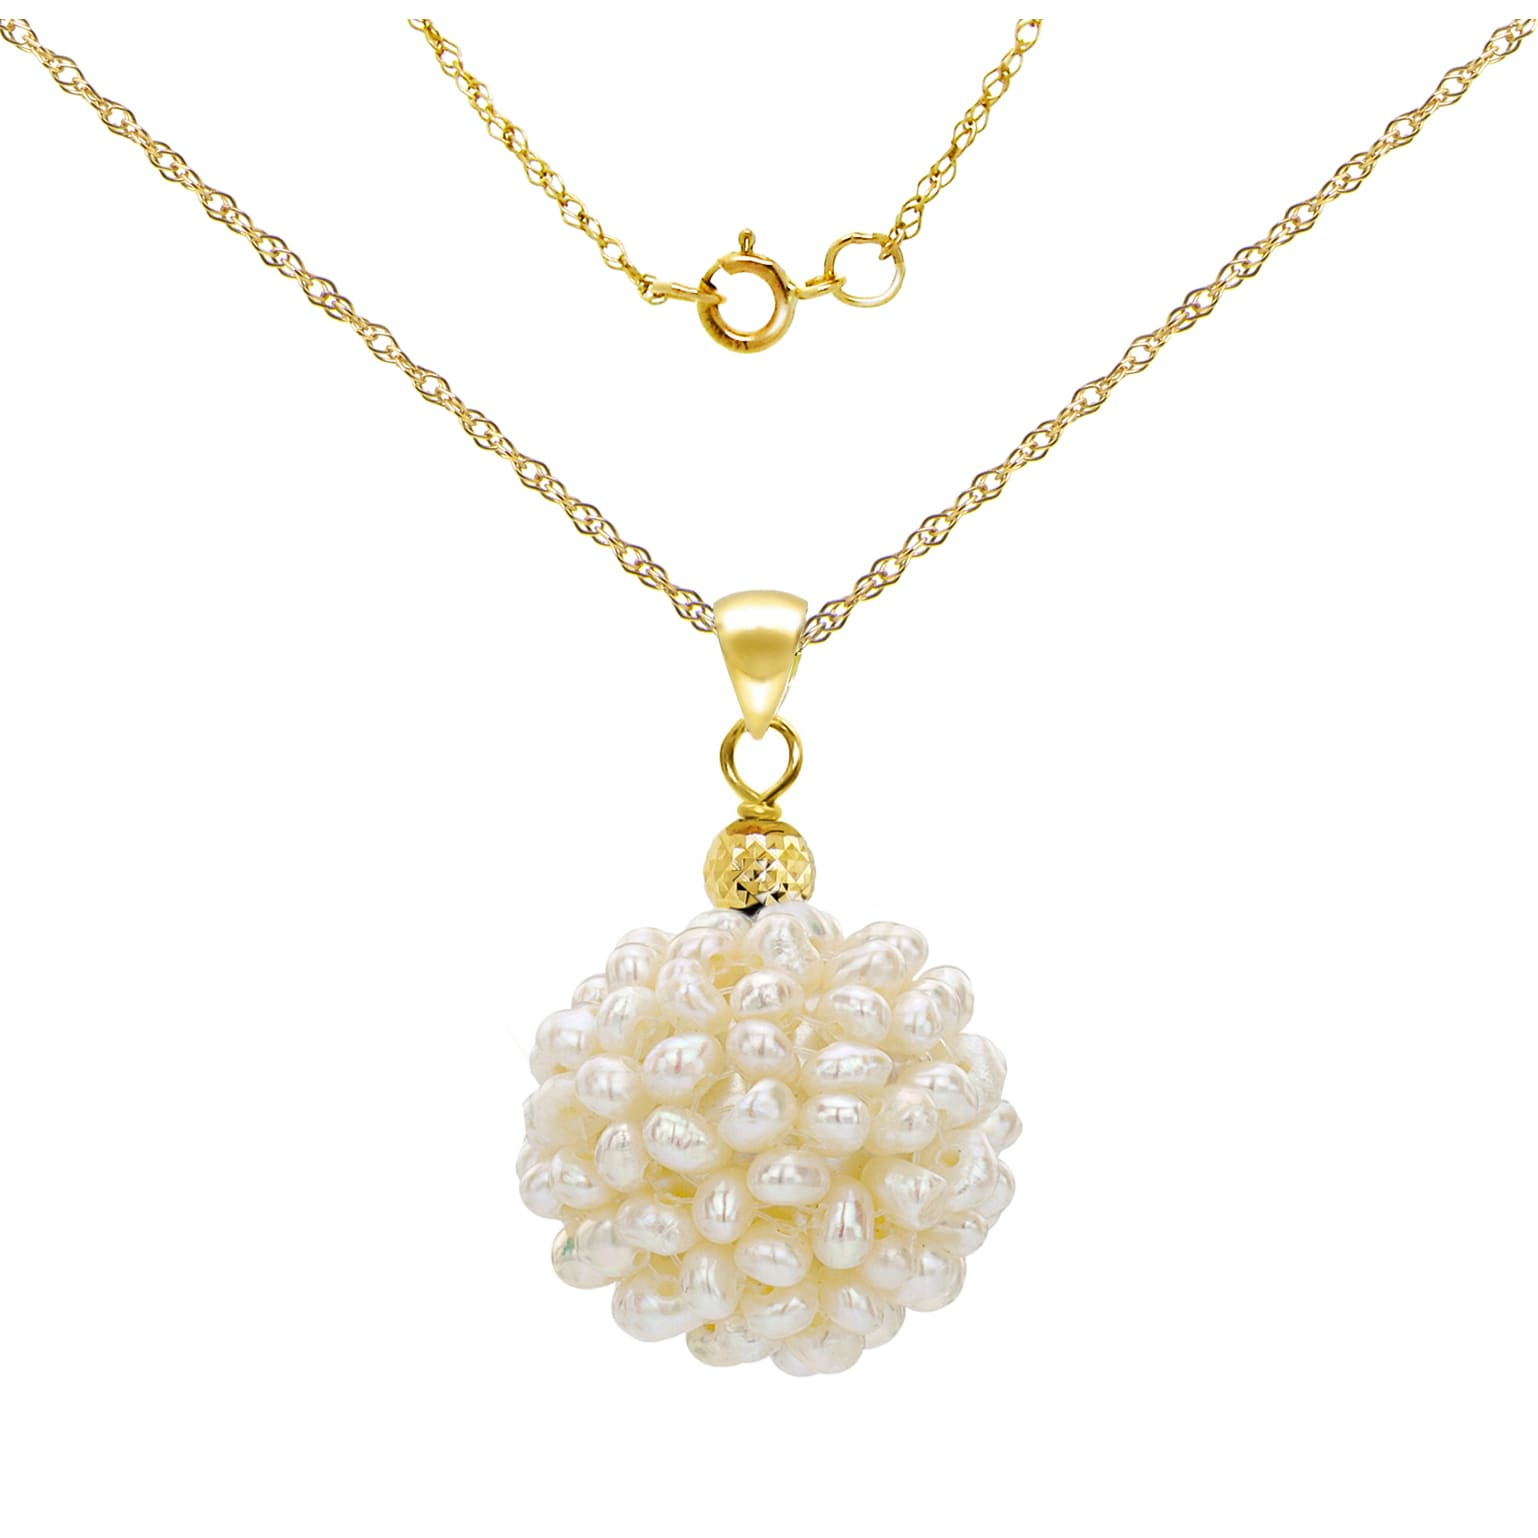 Shop Davonna 14k Yellow Gold Chain Necklace With 15 16mm Snowball Design White Freshwater Cultured Pearl Pendant 18 Overstock 11654481